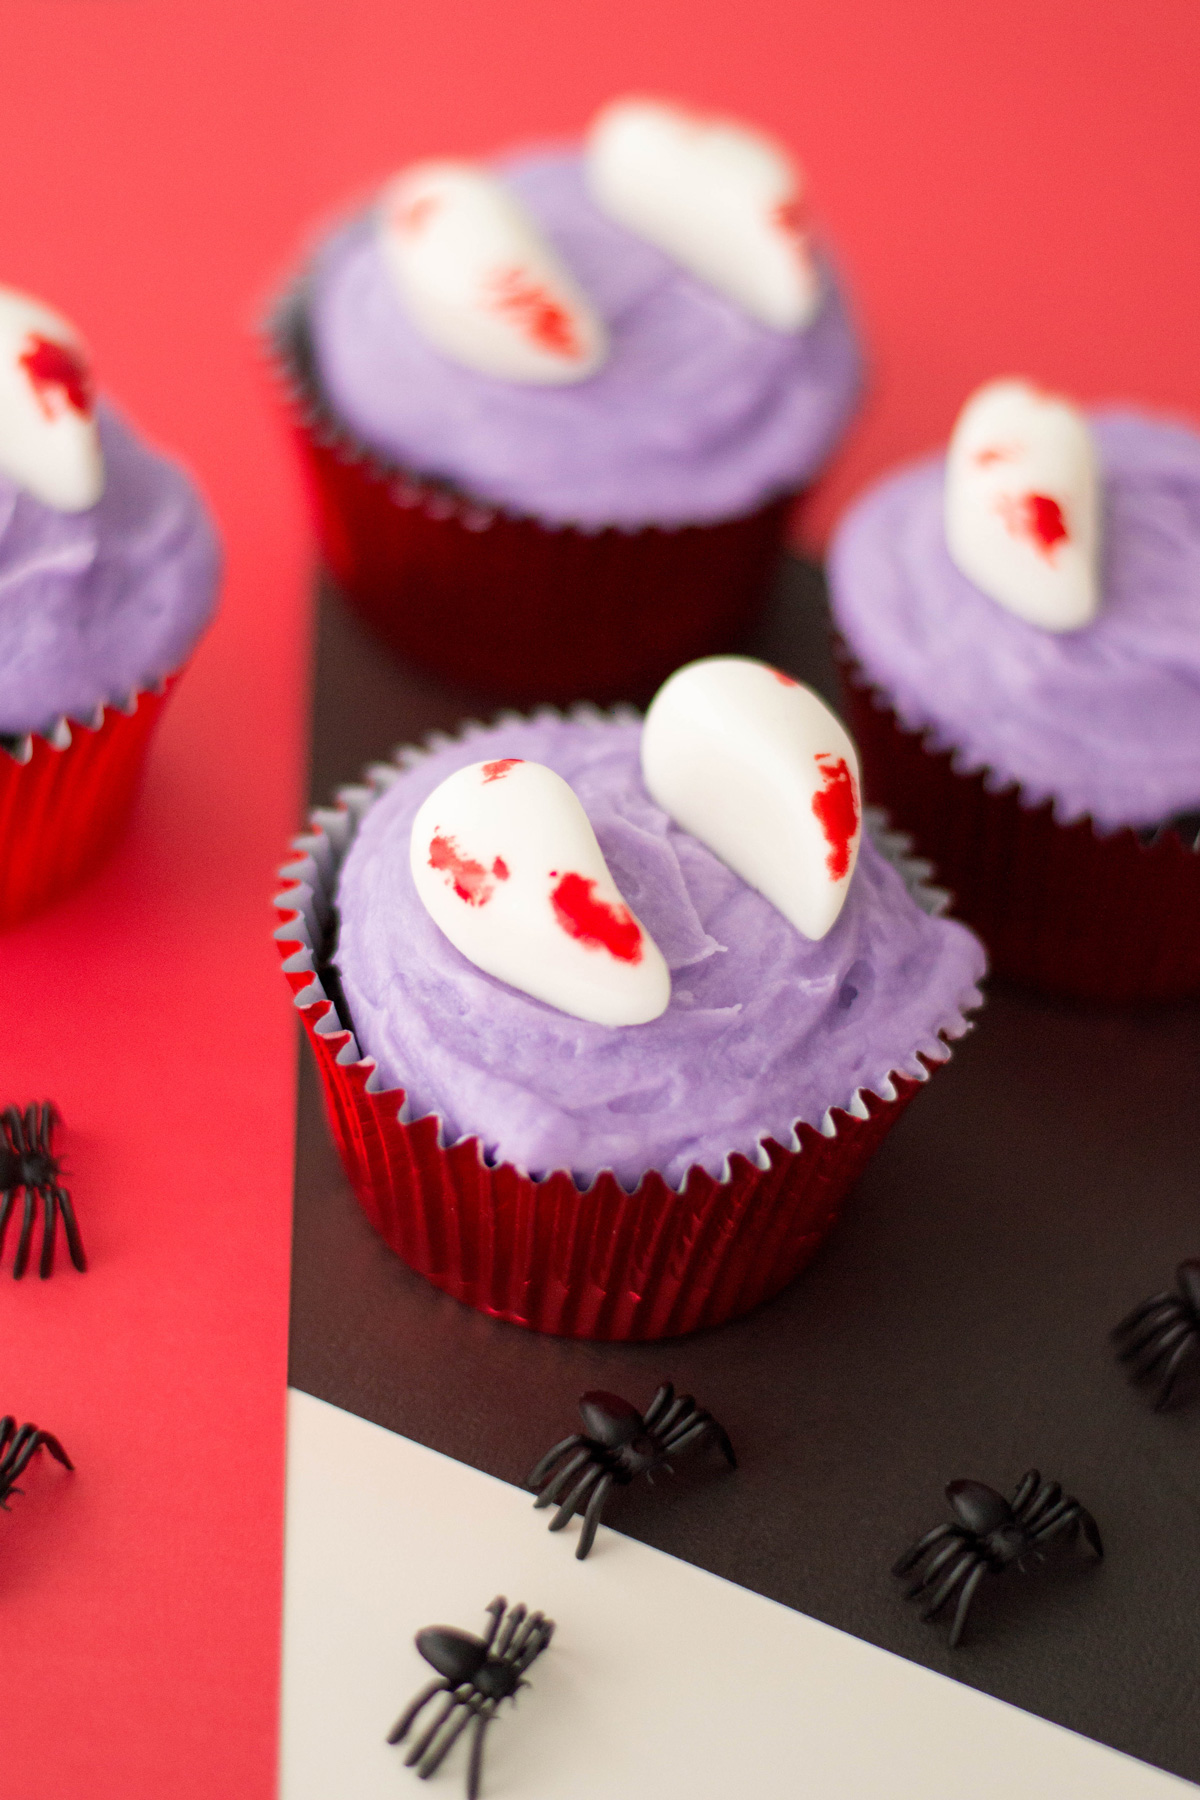 halloween cupcakes with Dracula fangs